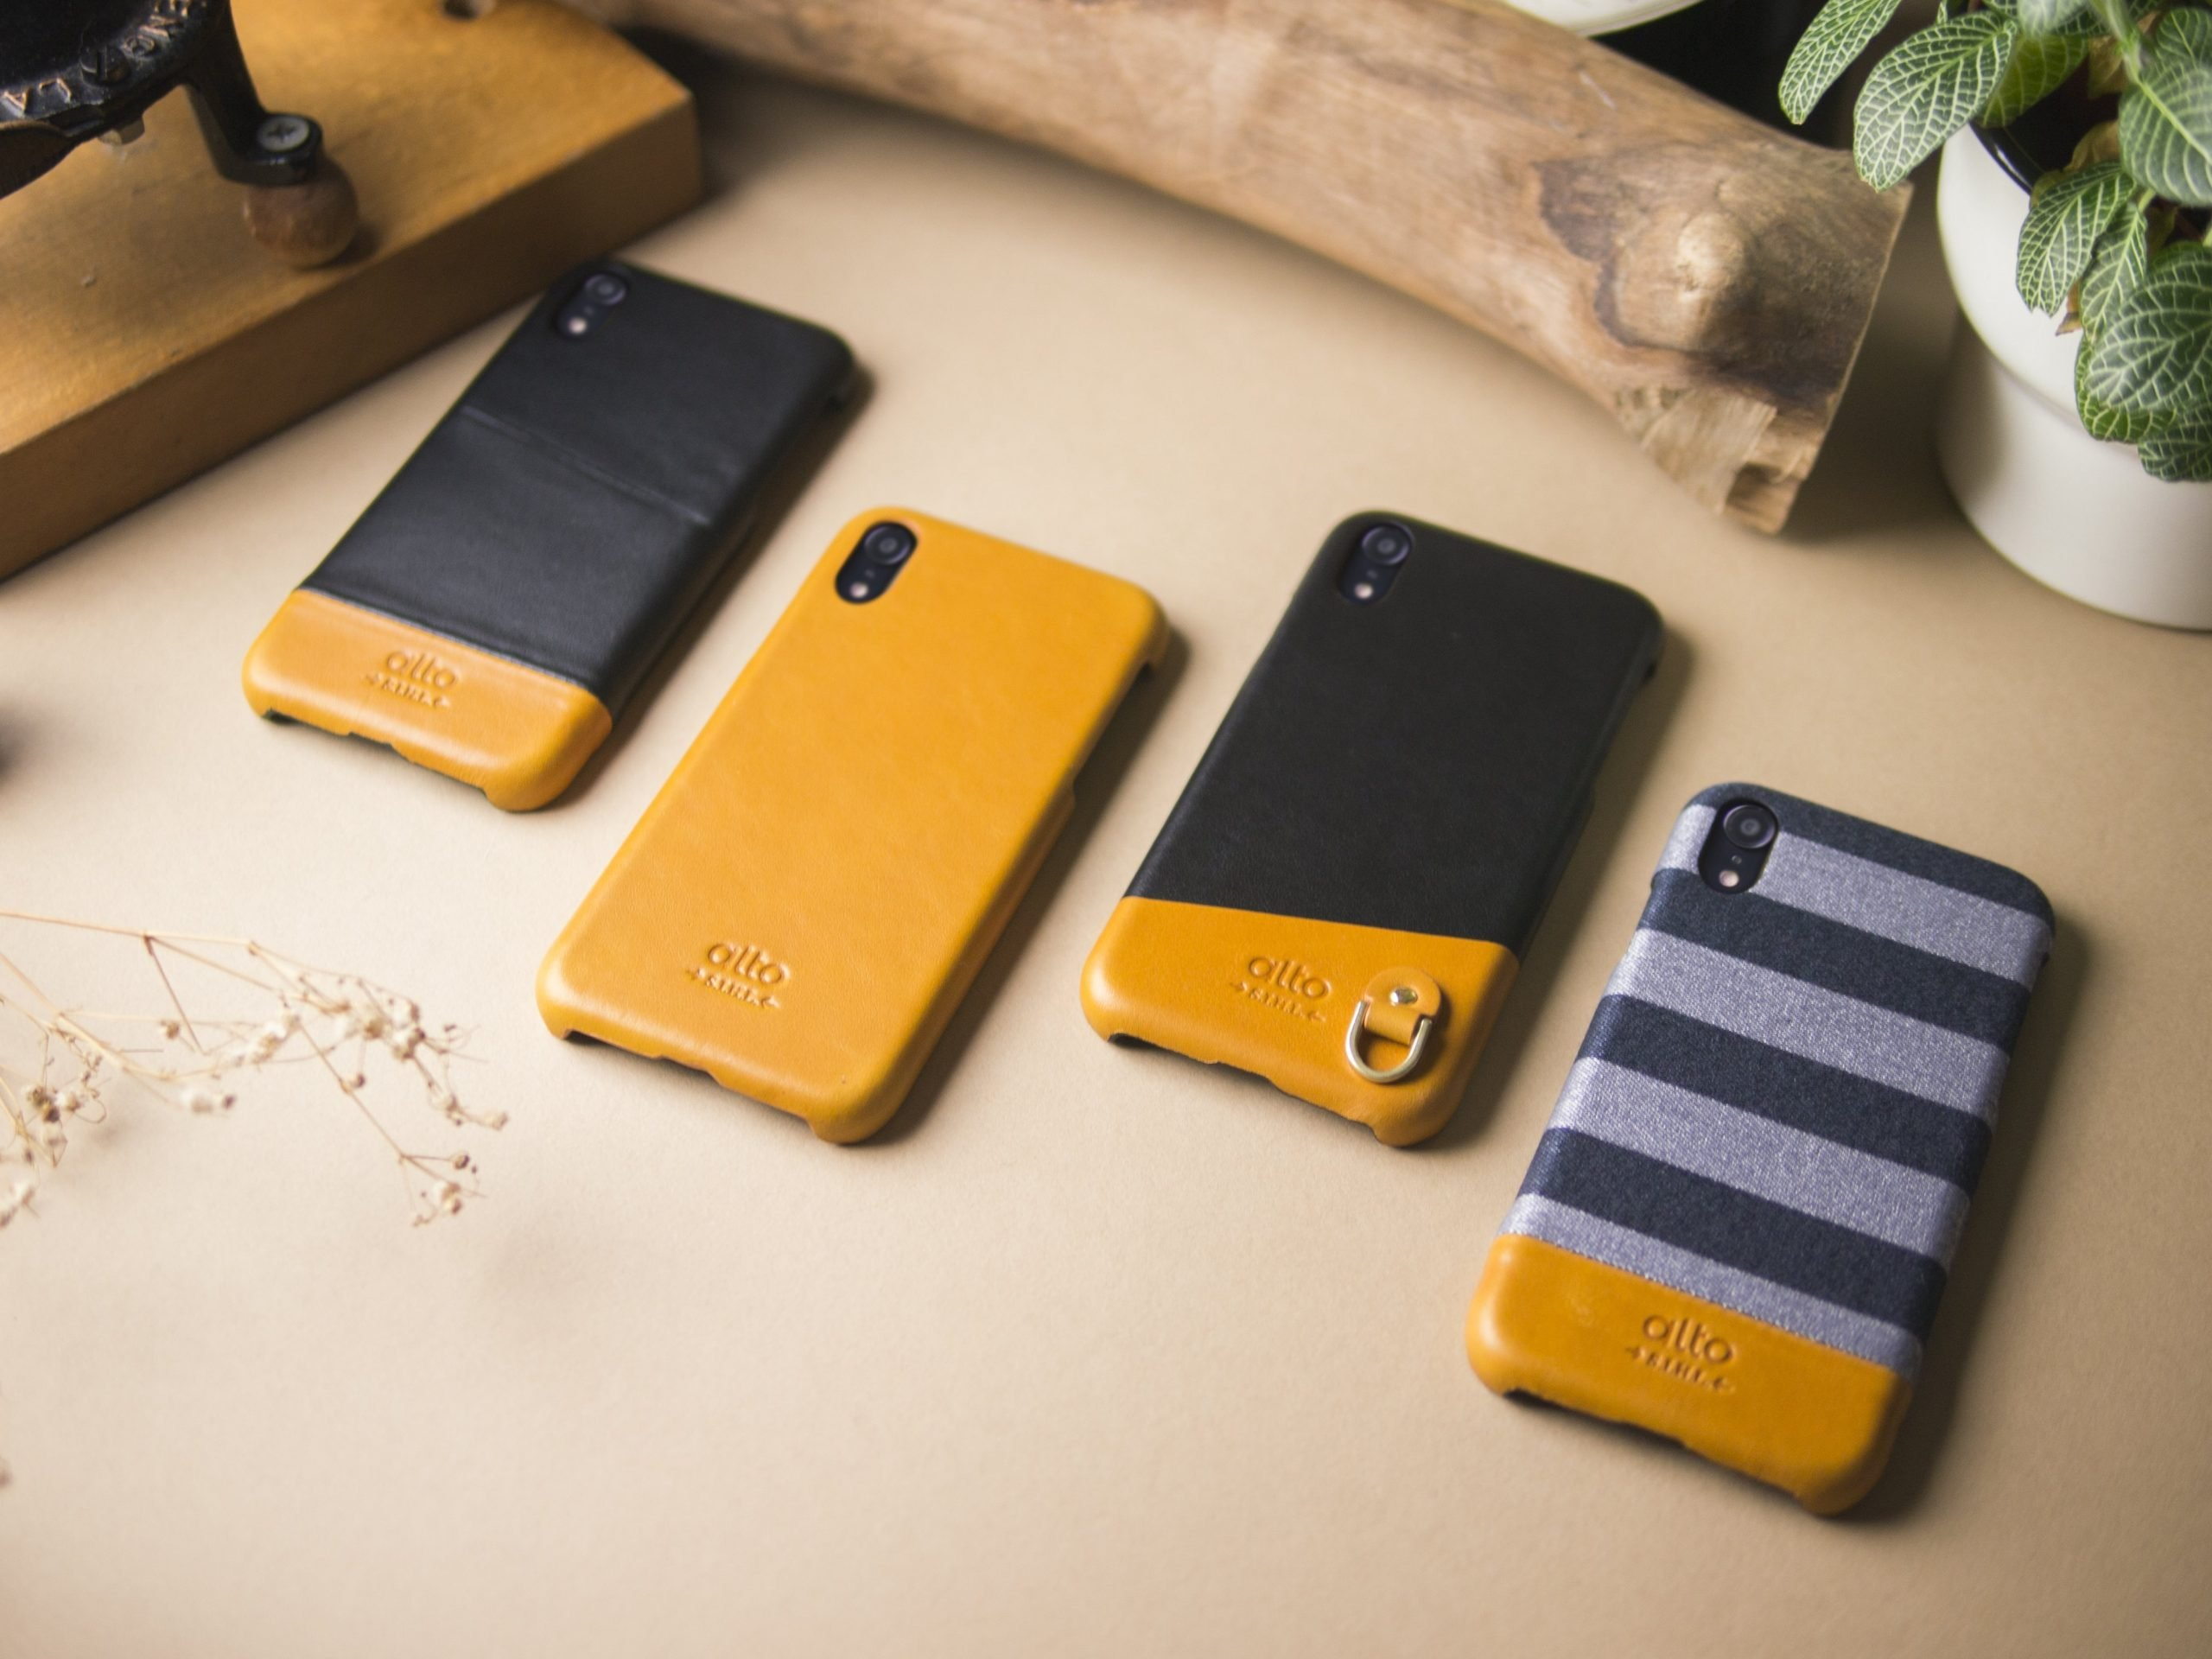 Learn all about the new Alto leather phone case series at once